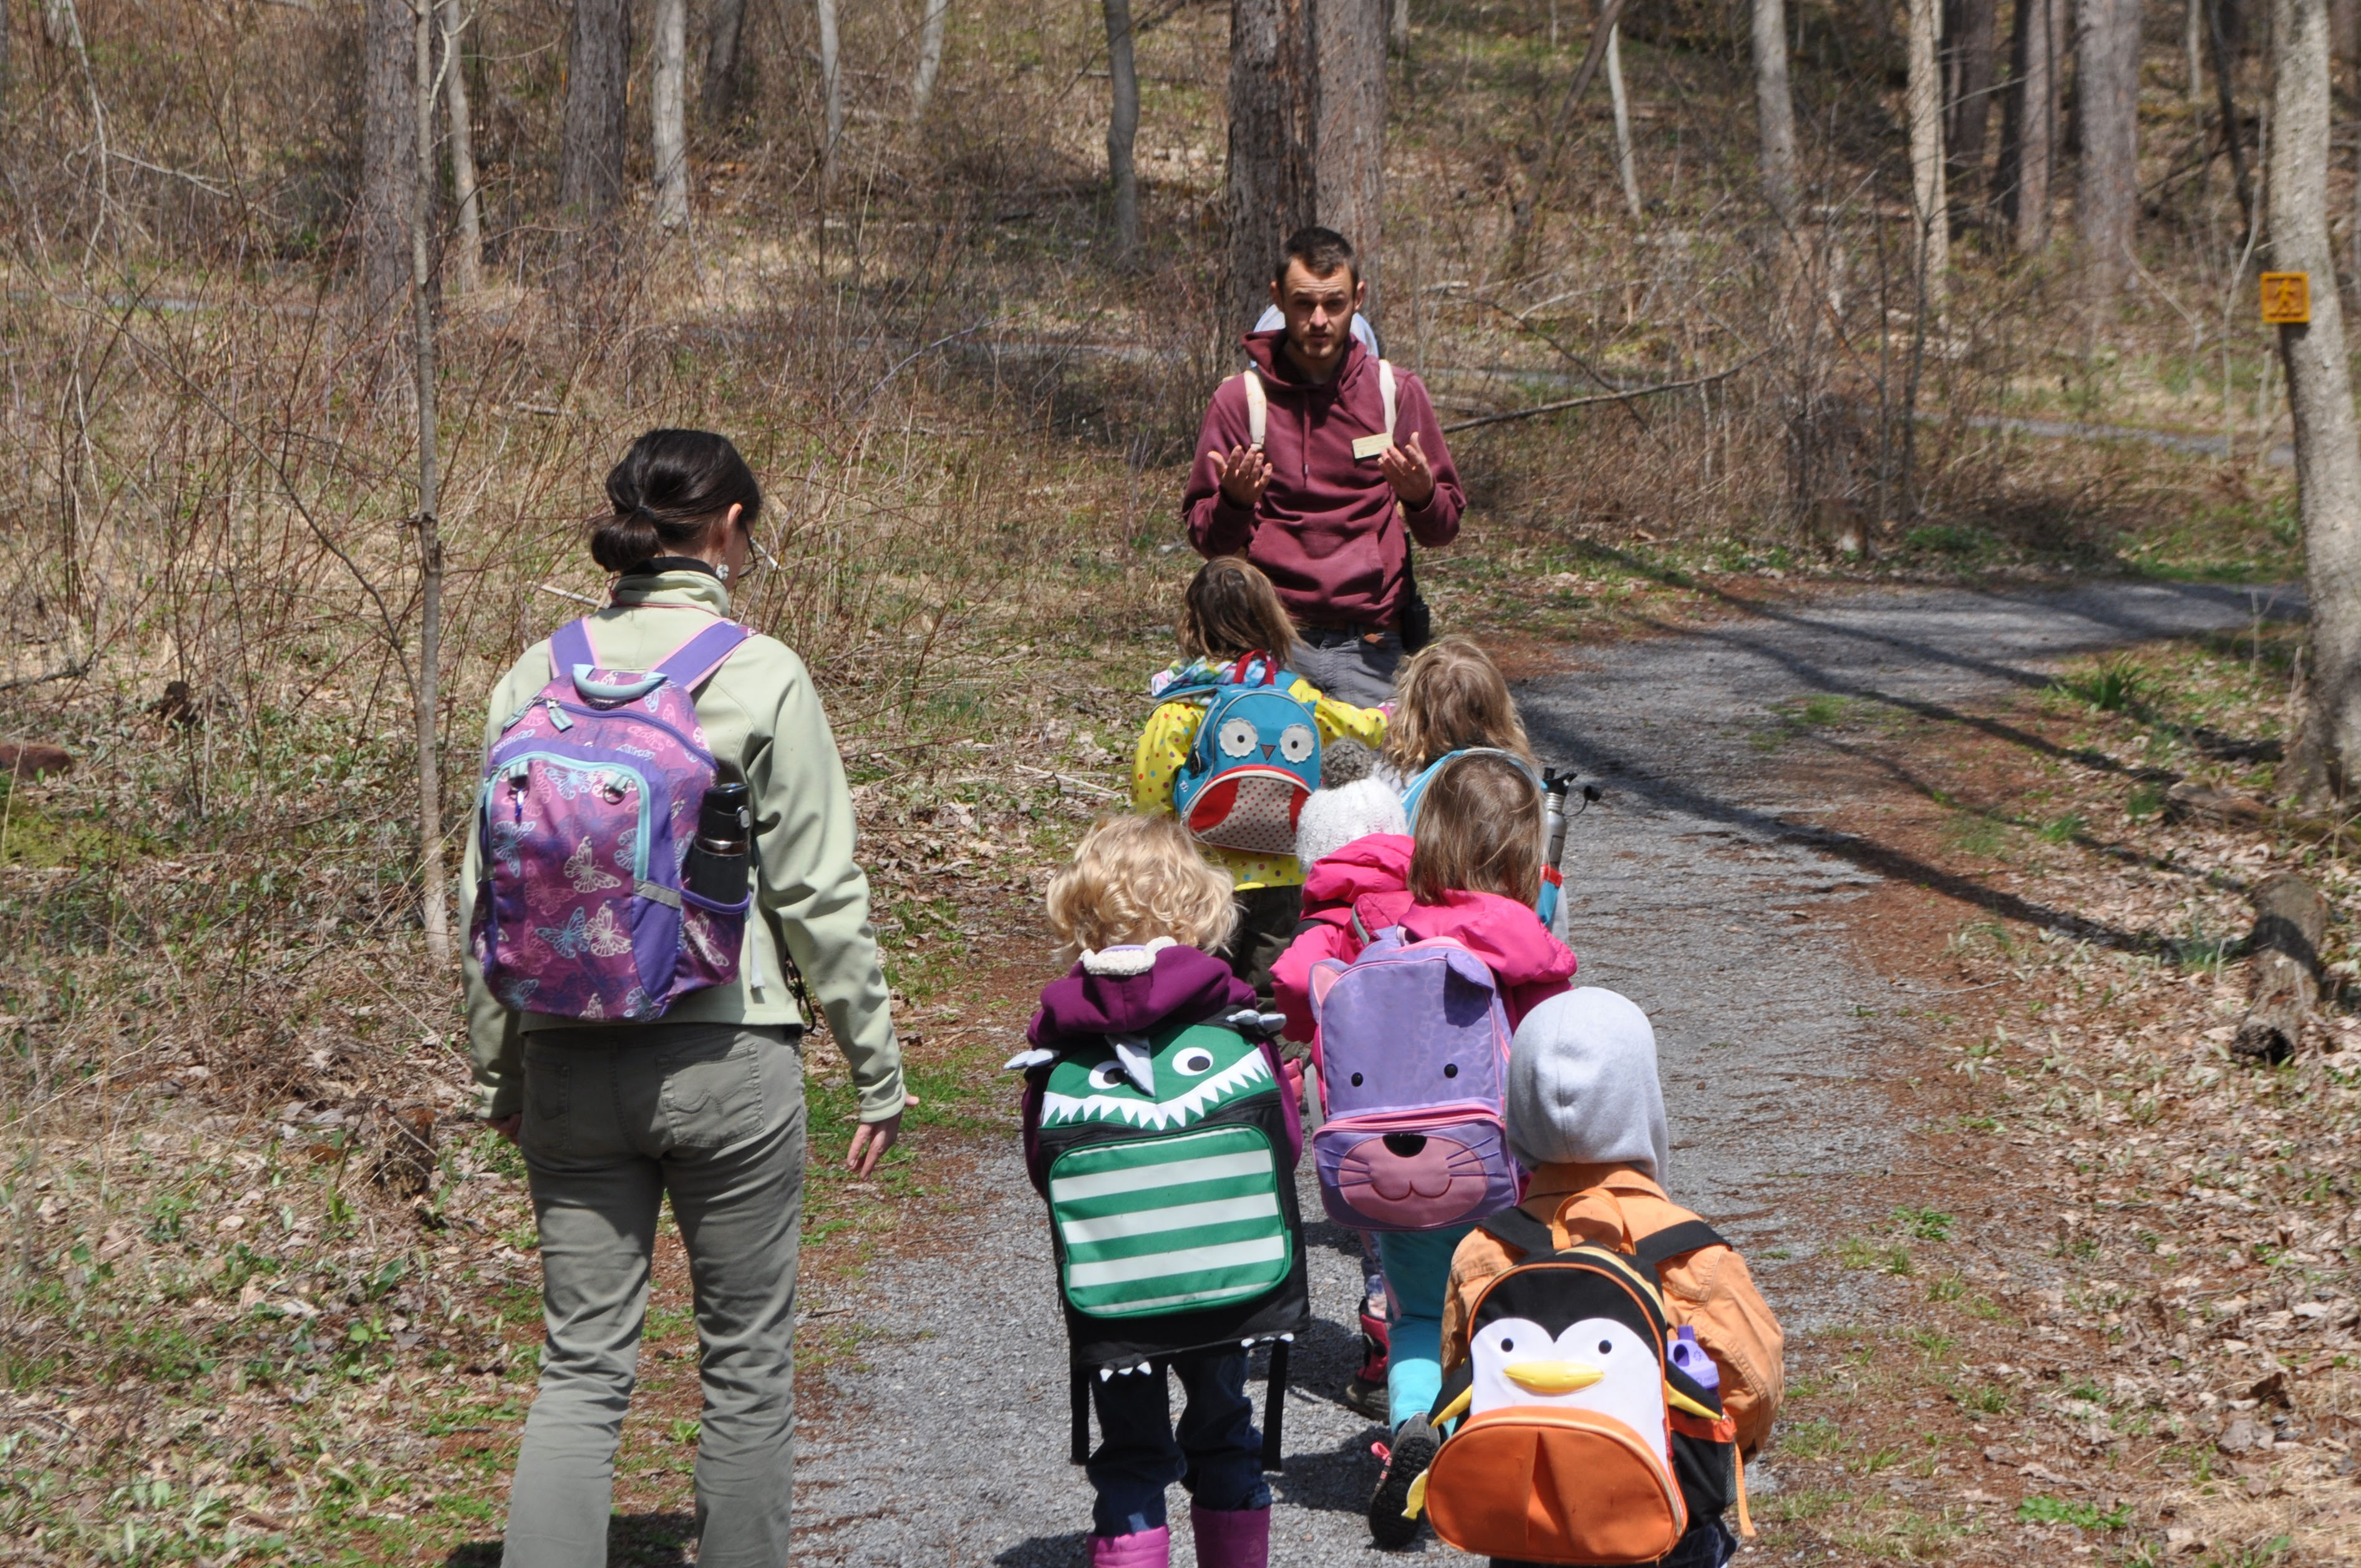 Counselor and kids hiking on a trail